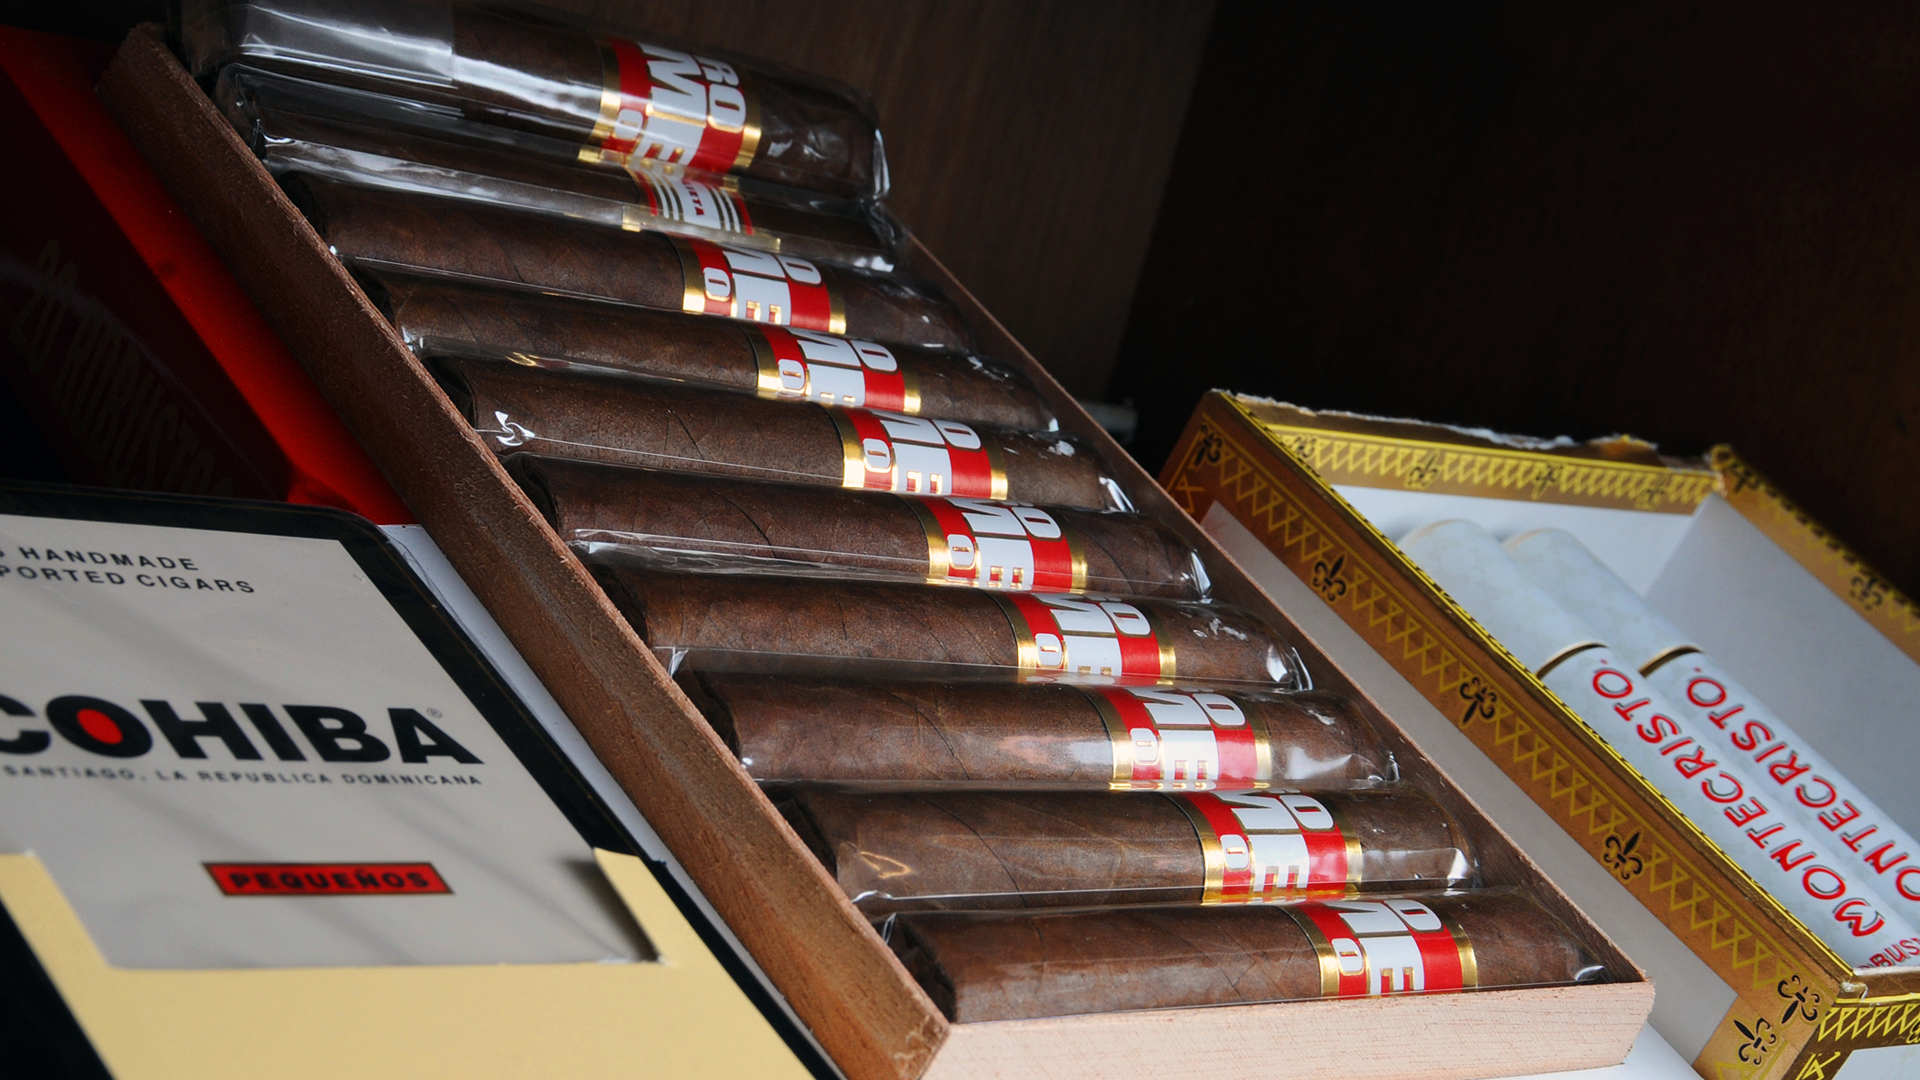 Cigars & Tobacco Products